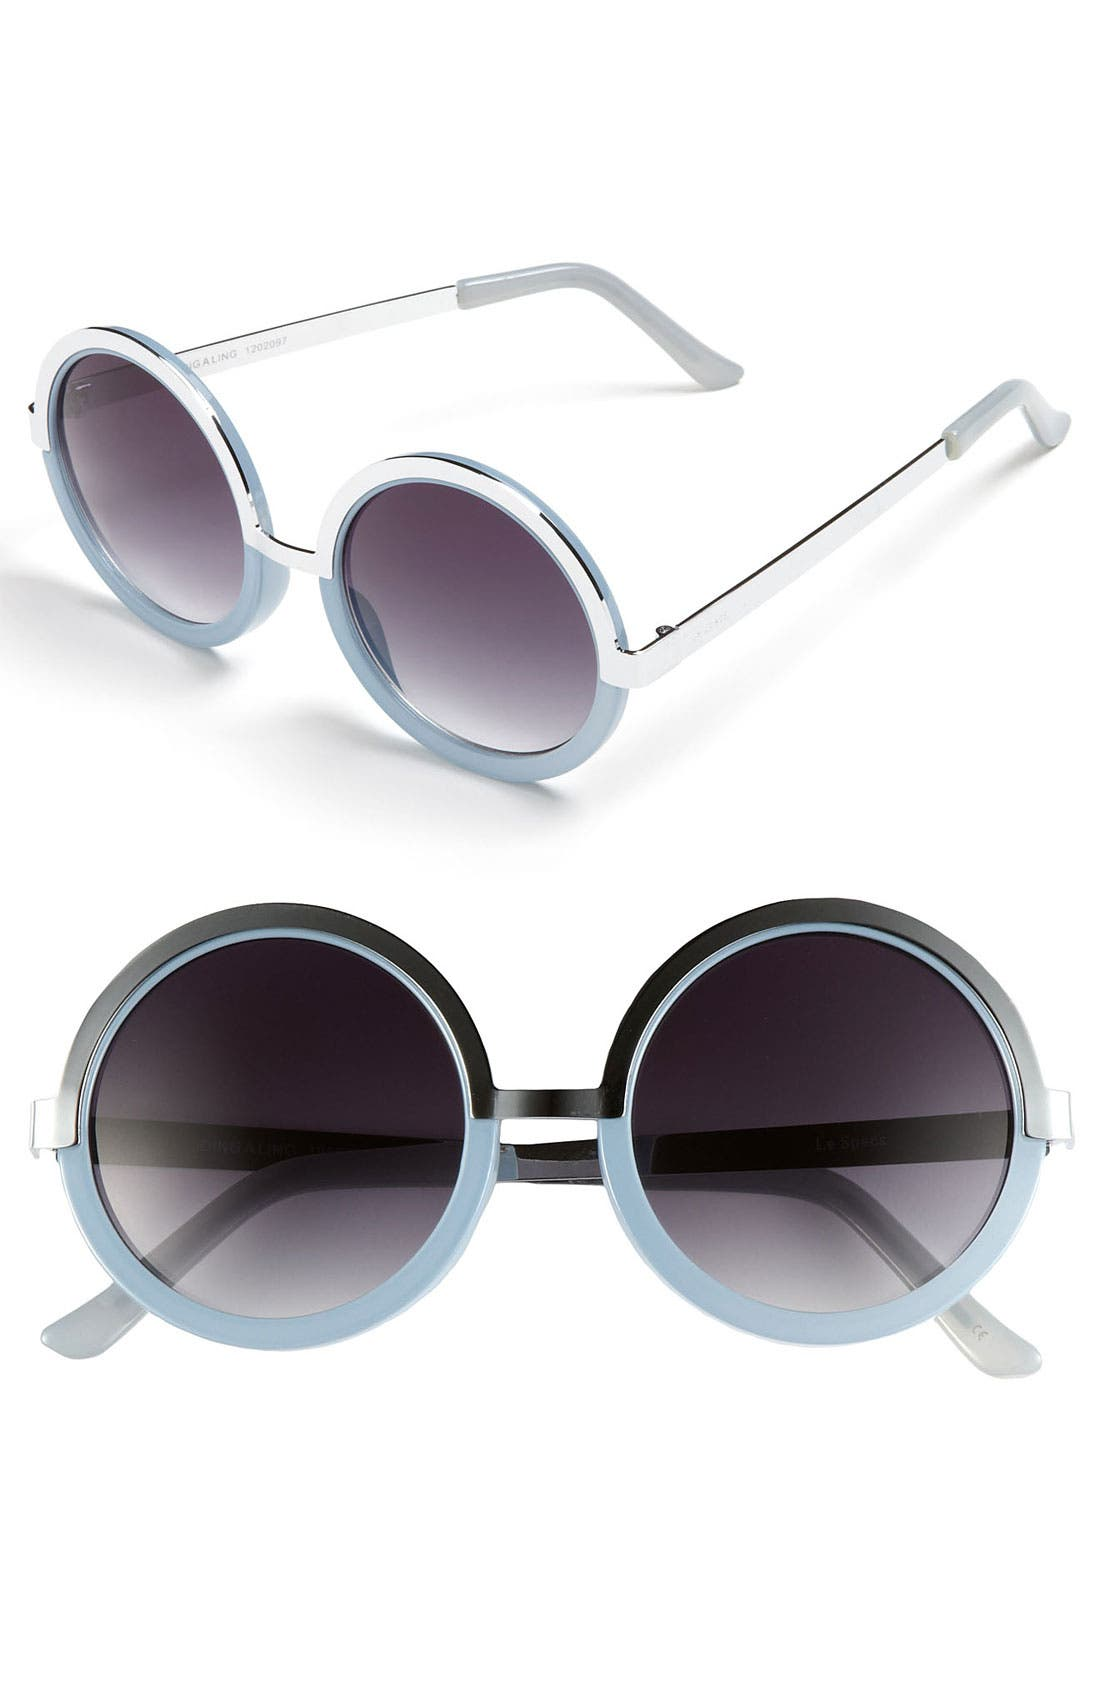 Main Image - Le Specs 'Ding A Ling' Sunglasses